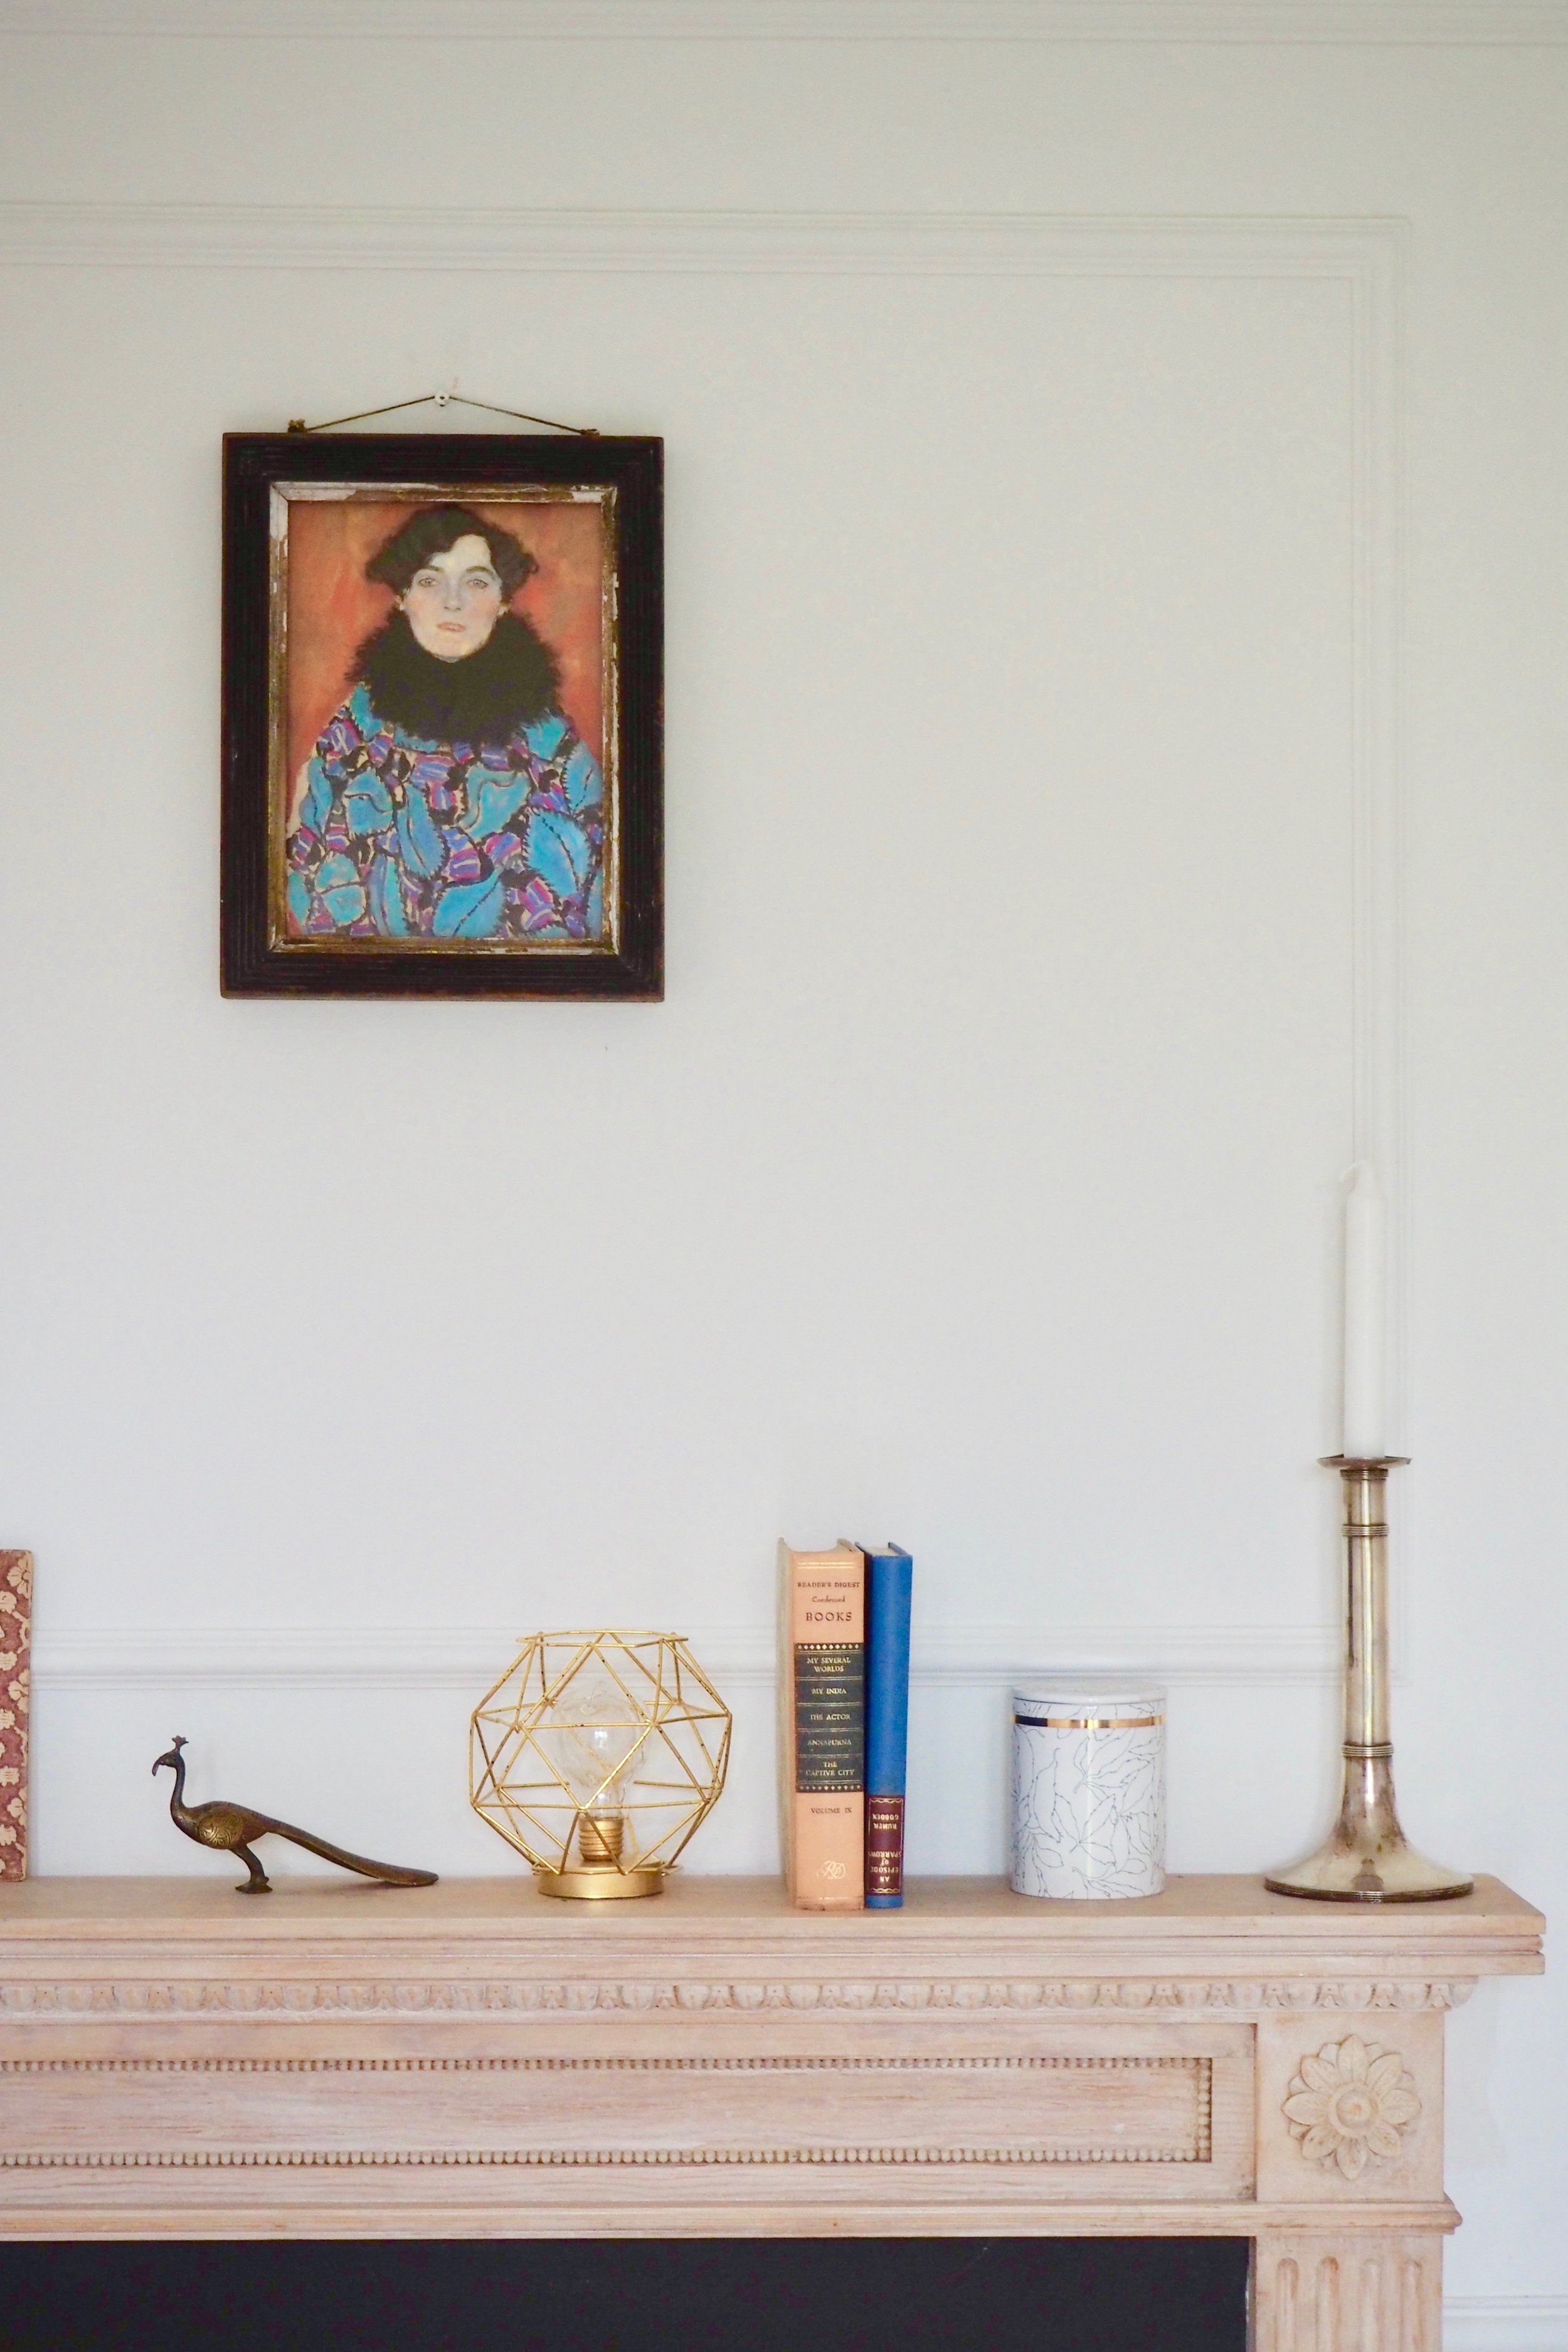 Different ways to style your mantelpiece by Camilla Pearl. Try using eclectic art and accessories to style and dress your mantelpiece.